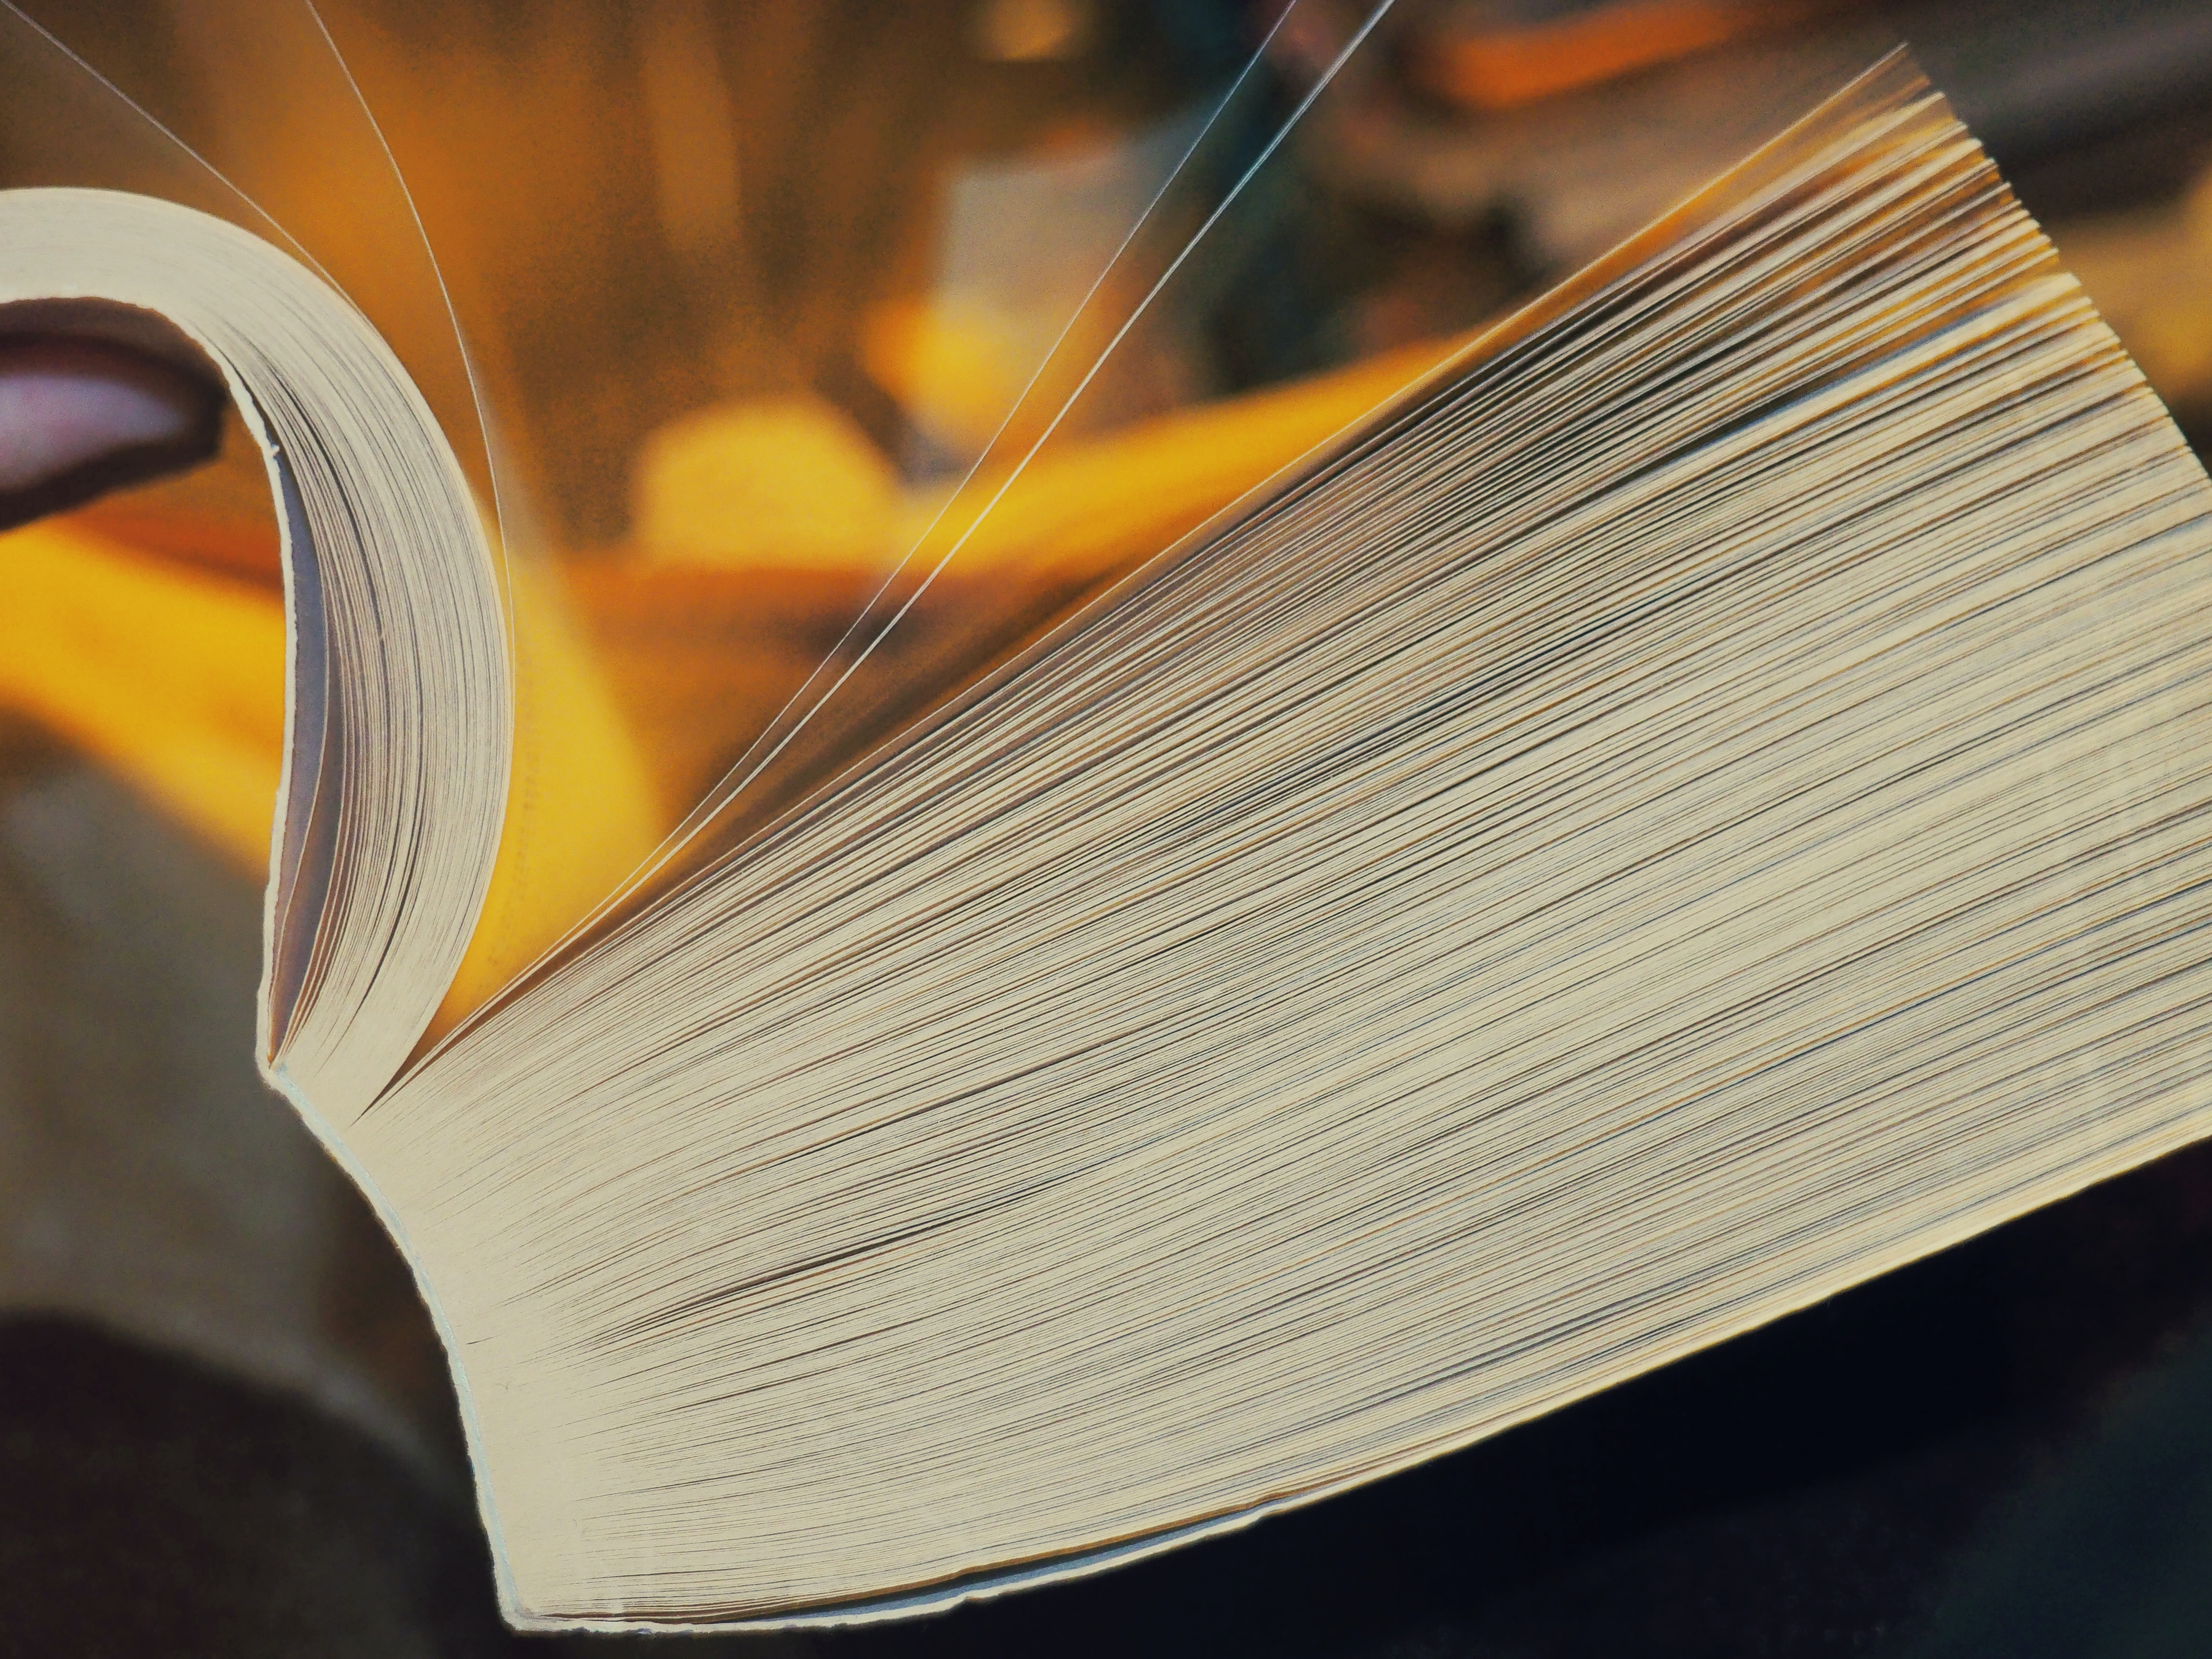 closed-up photo of white open book